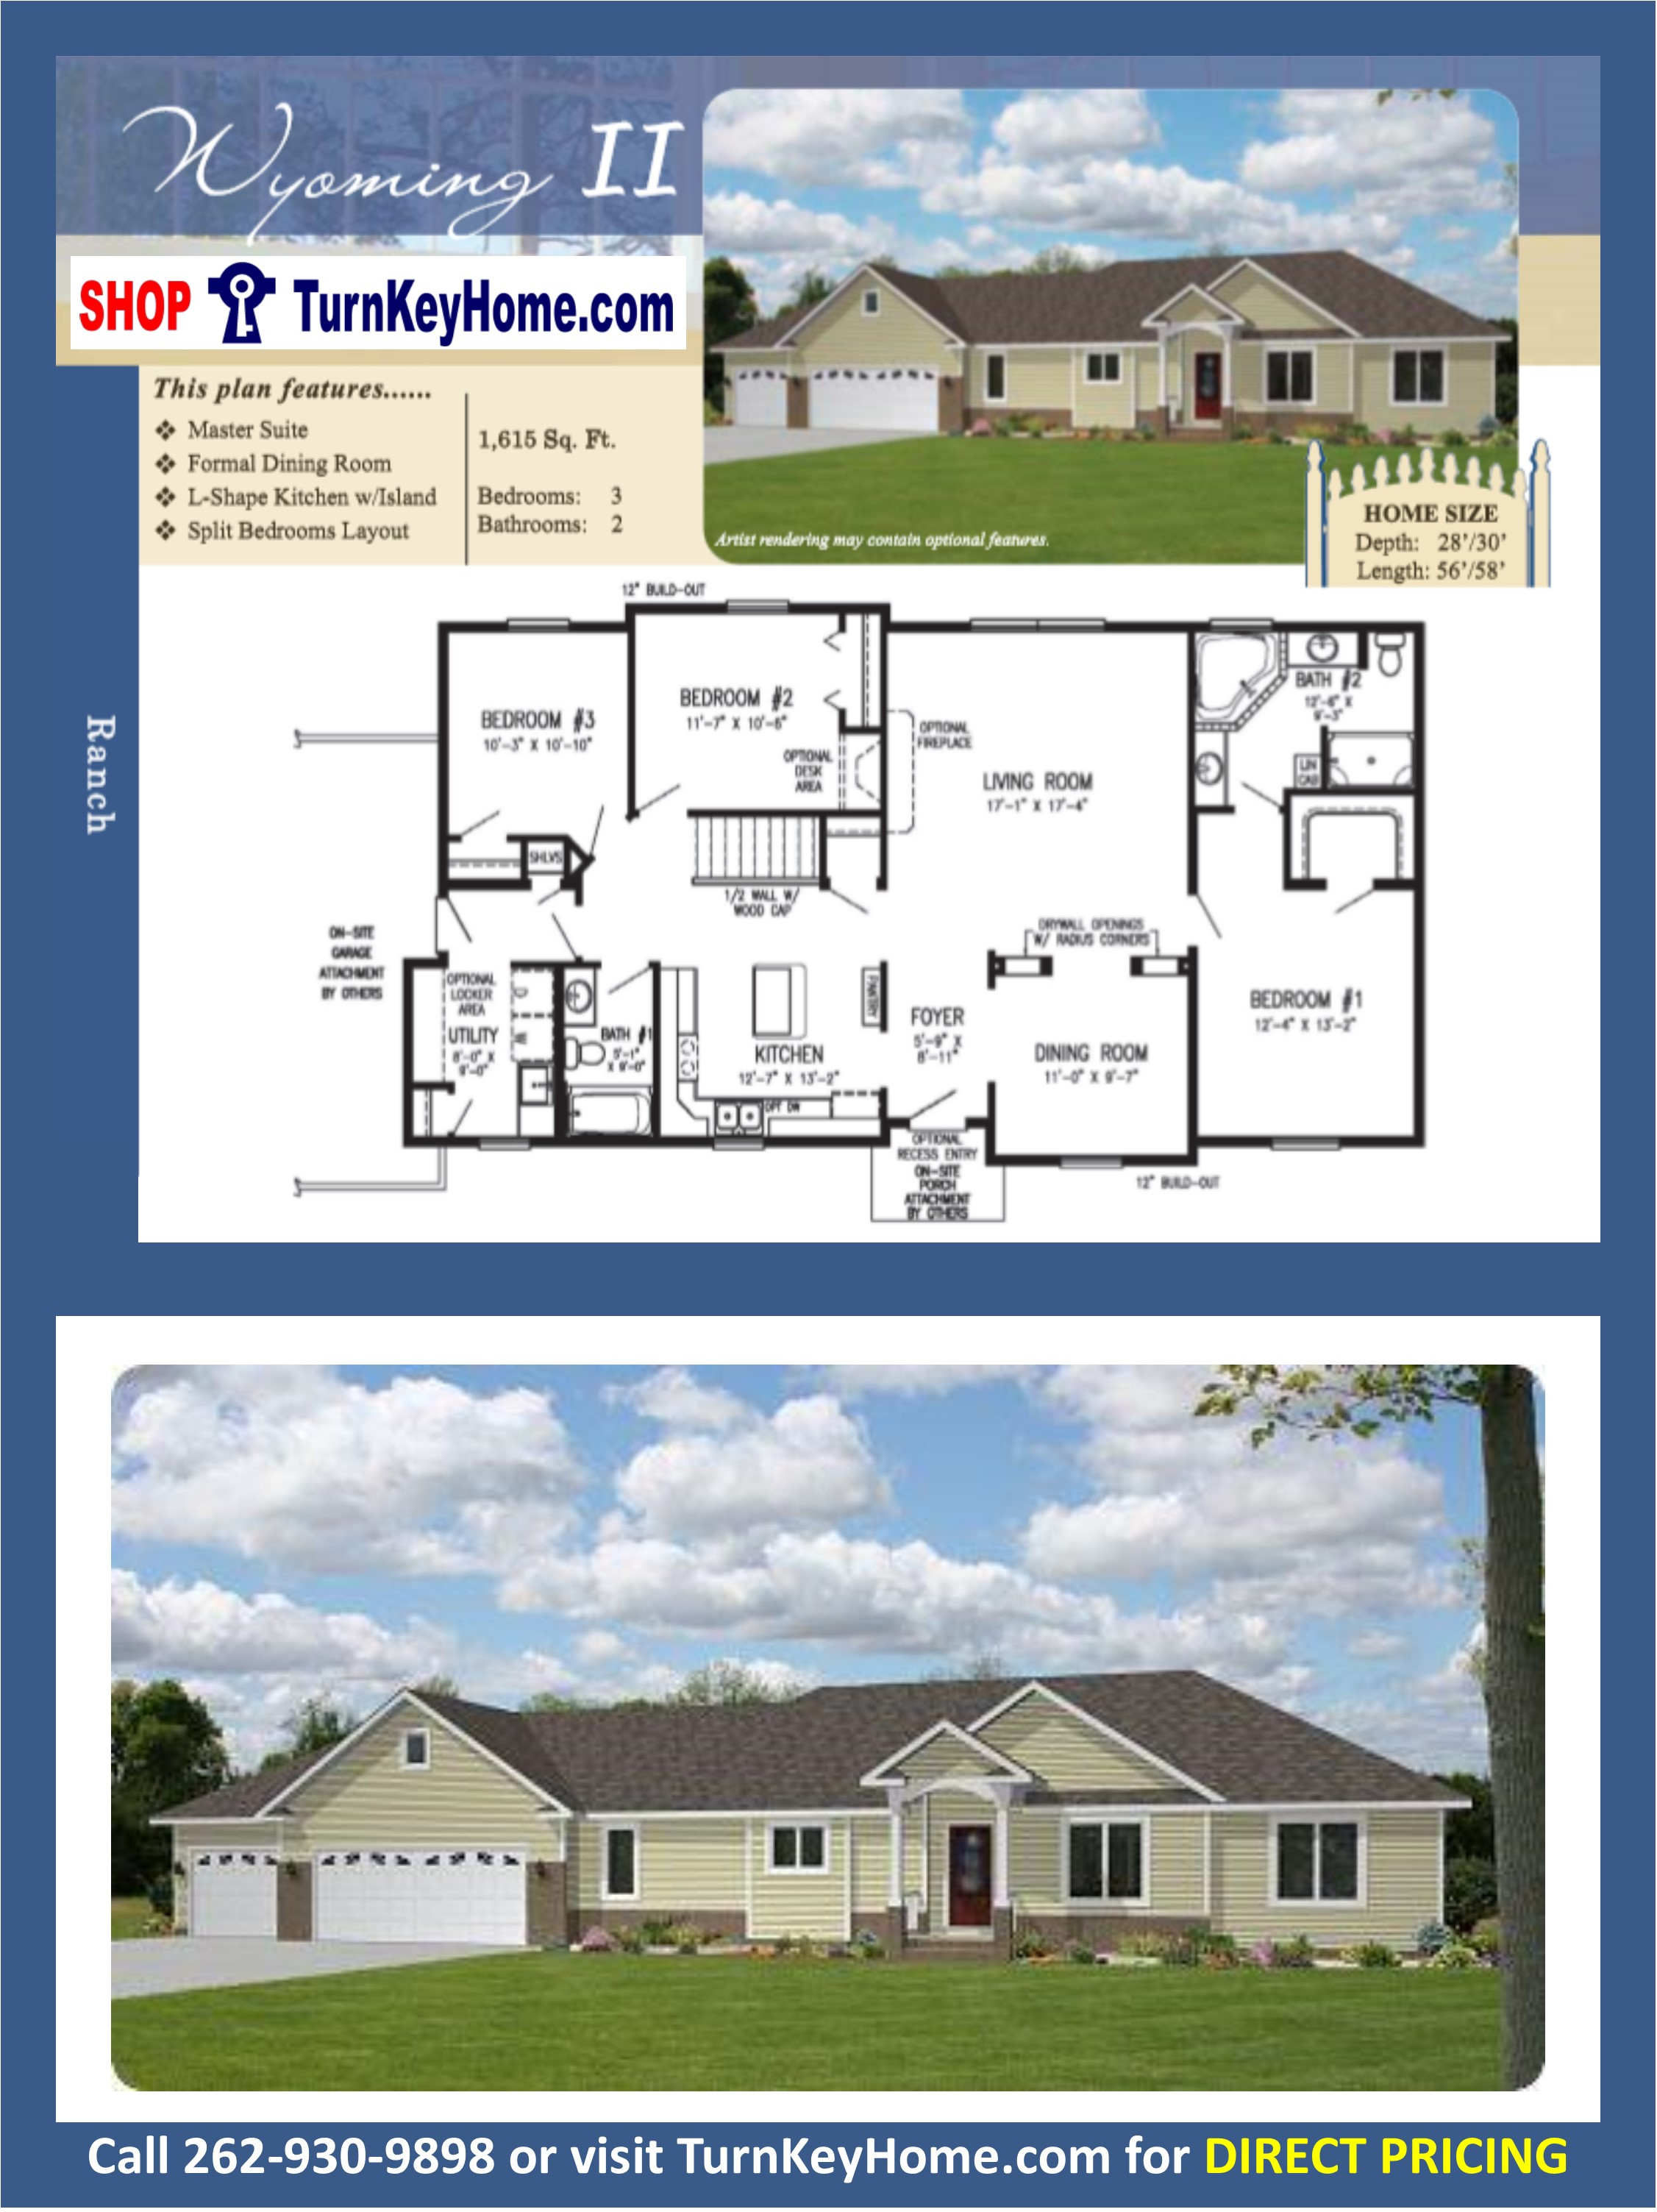 WYOMING ll Ranch Home 3 Bed 2 Bath Plan 1615 SF Priced From ...